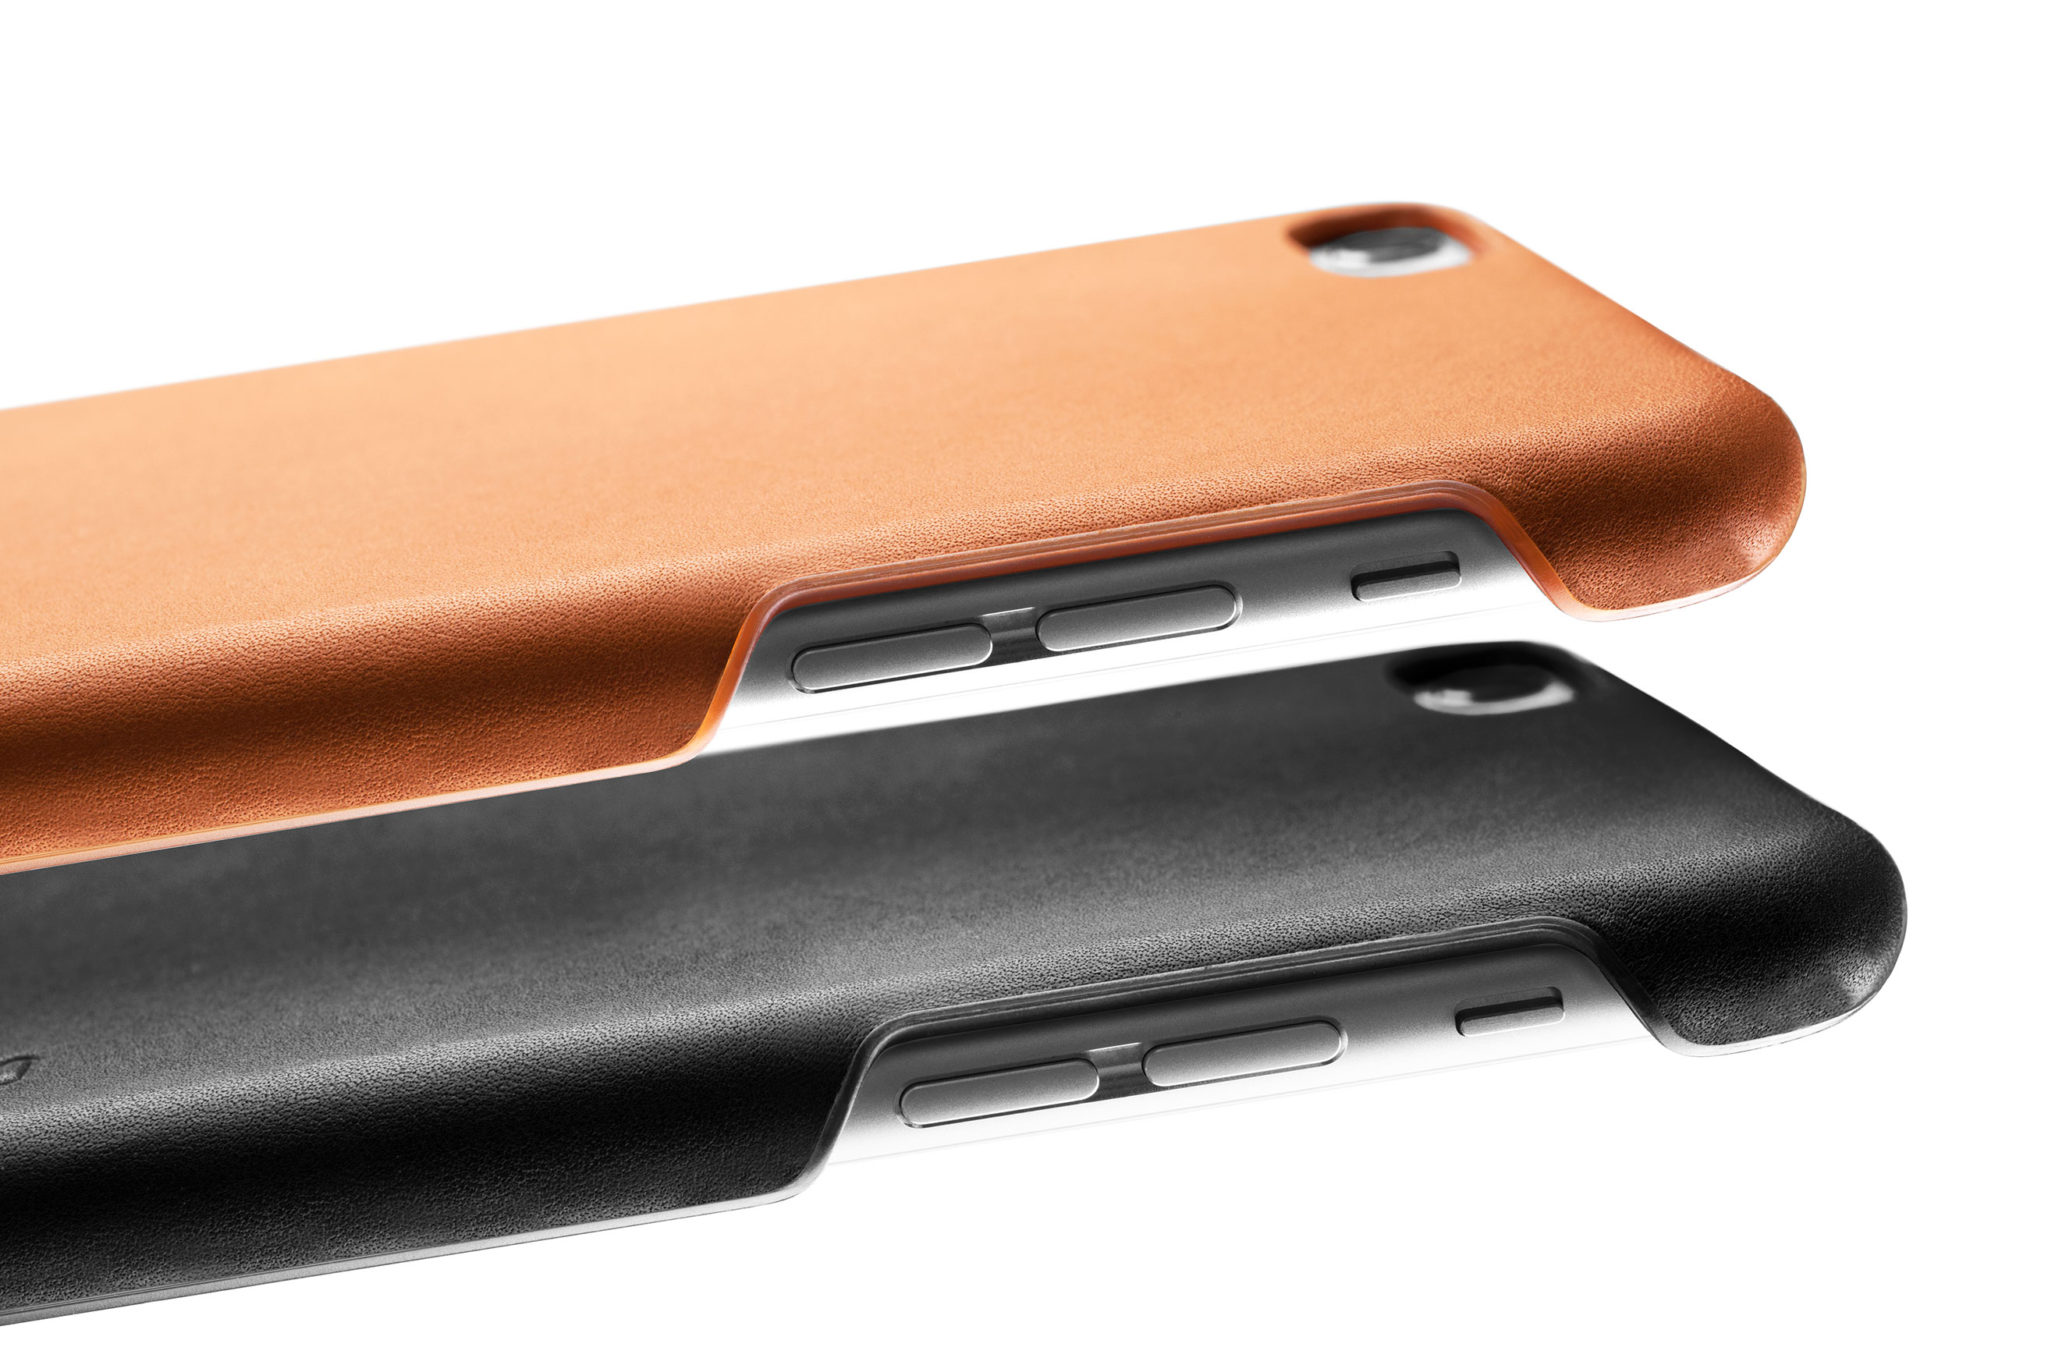 Leather-Case-for-iPhone-6s-Plus-Tan-017-1